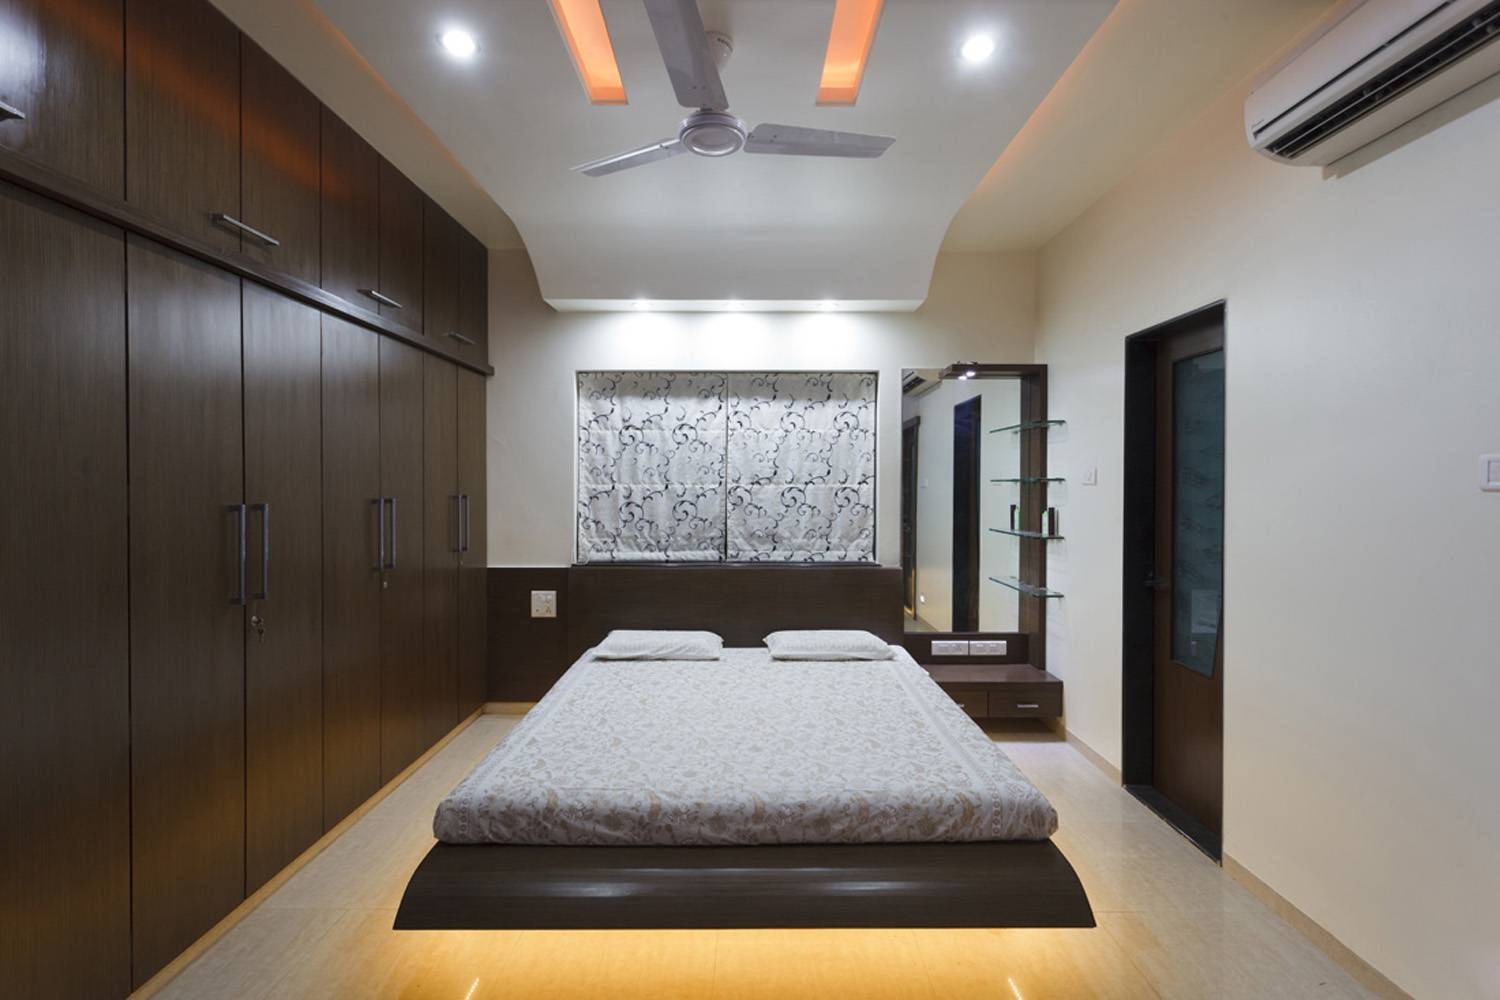 Bed room interior design portfolio leading interior - Designs of room ...